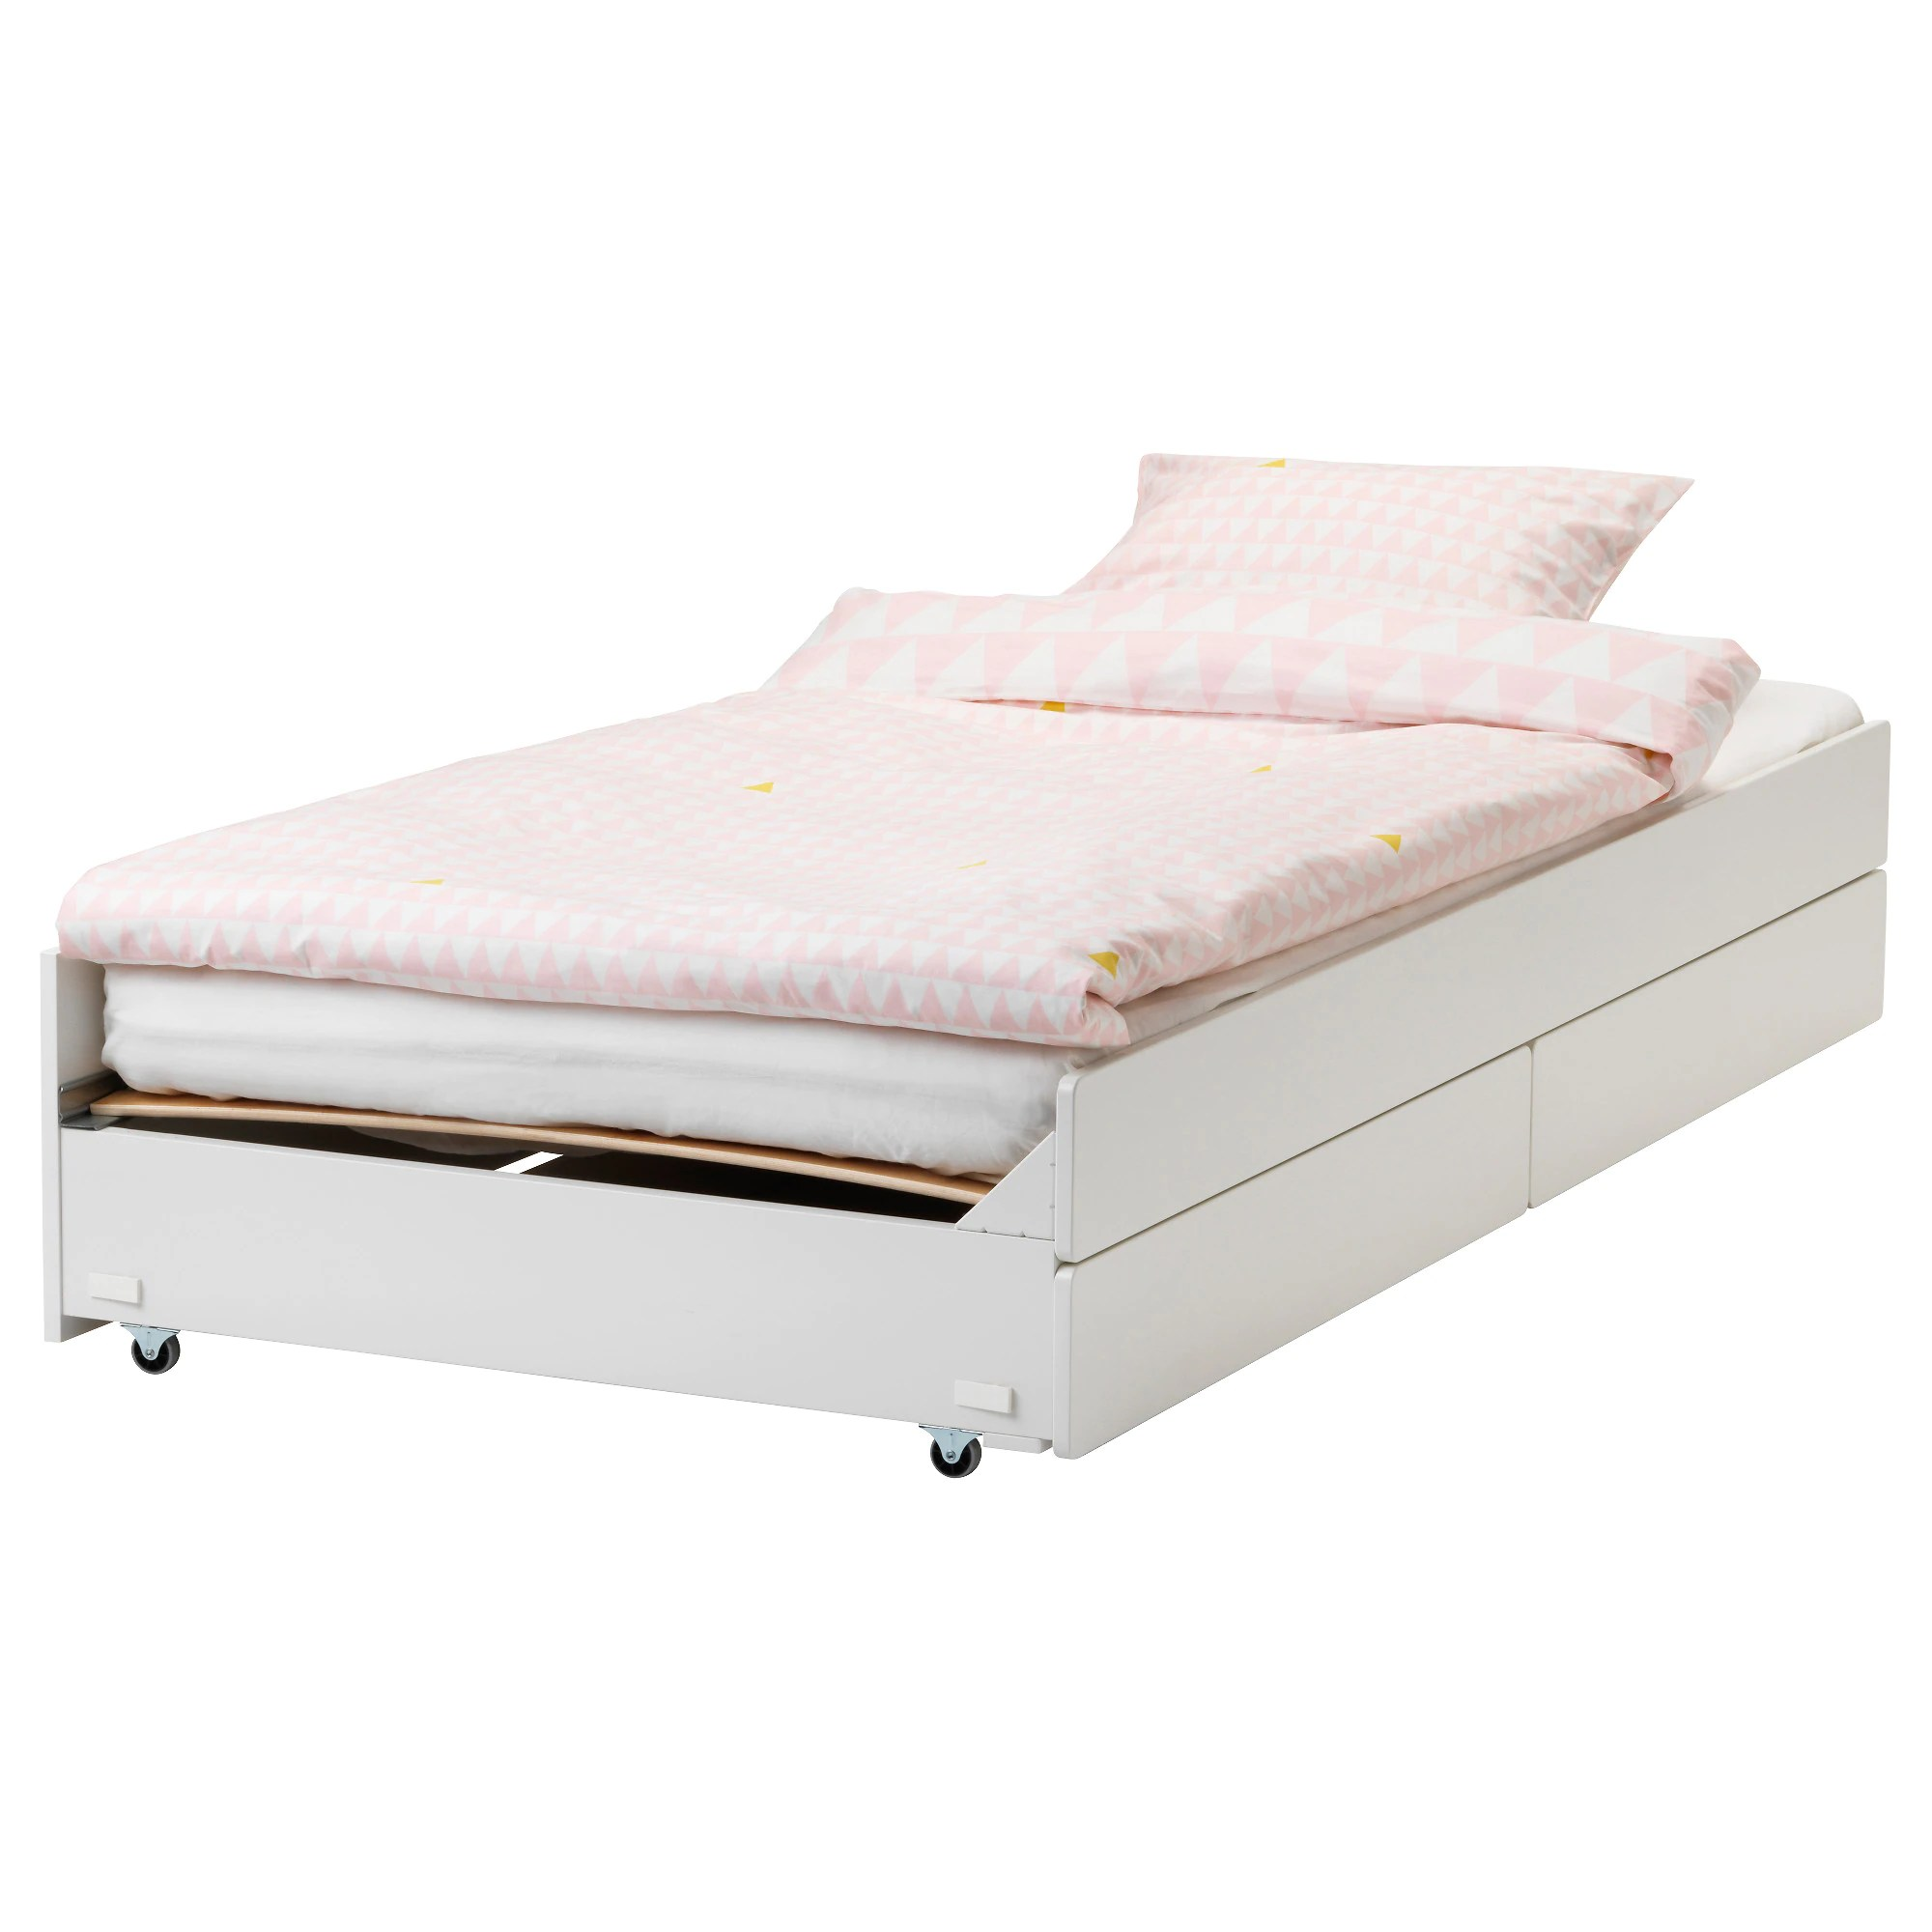 Childrens Beds With Pull Out Bed Underneath SlÄkt Pull Out Bed With Storage White